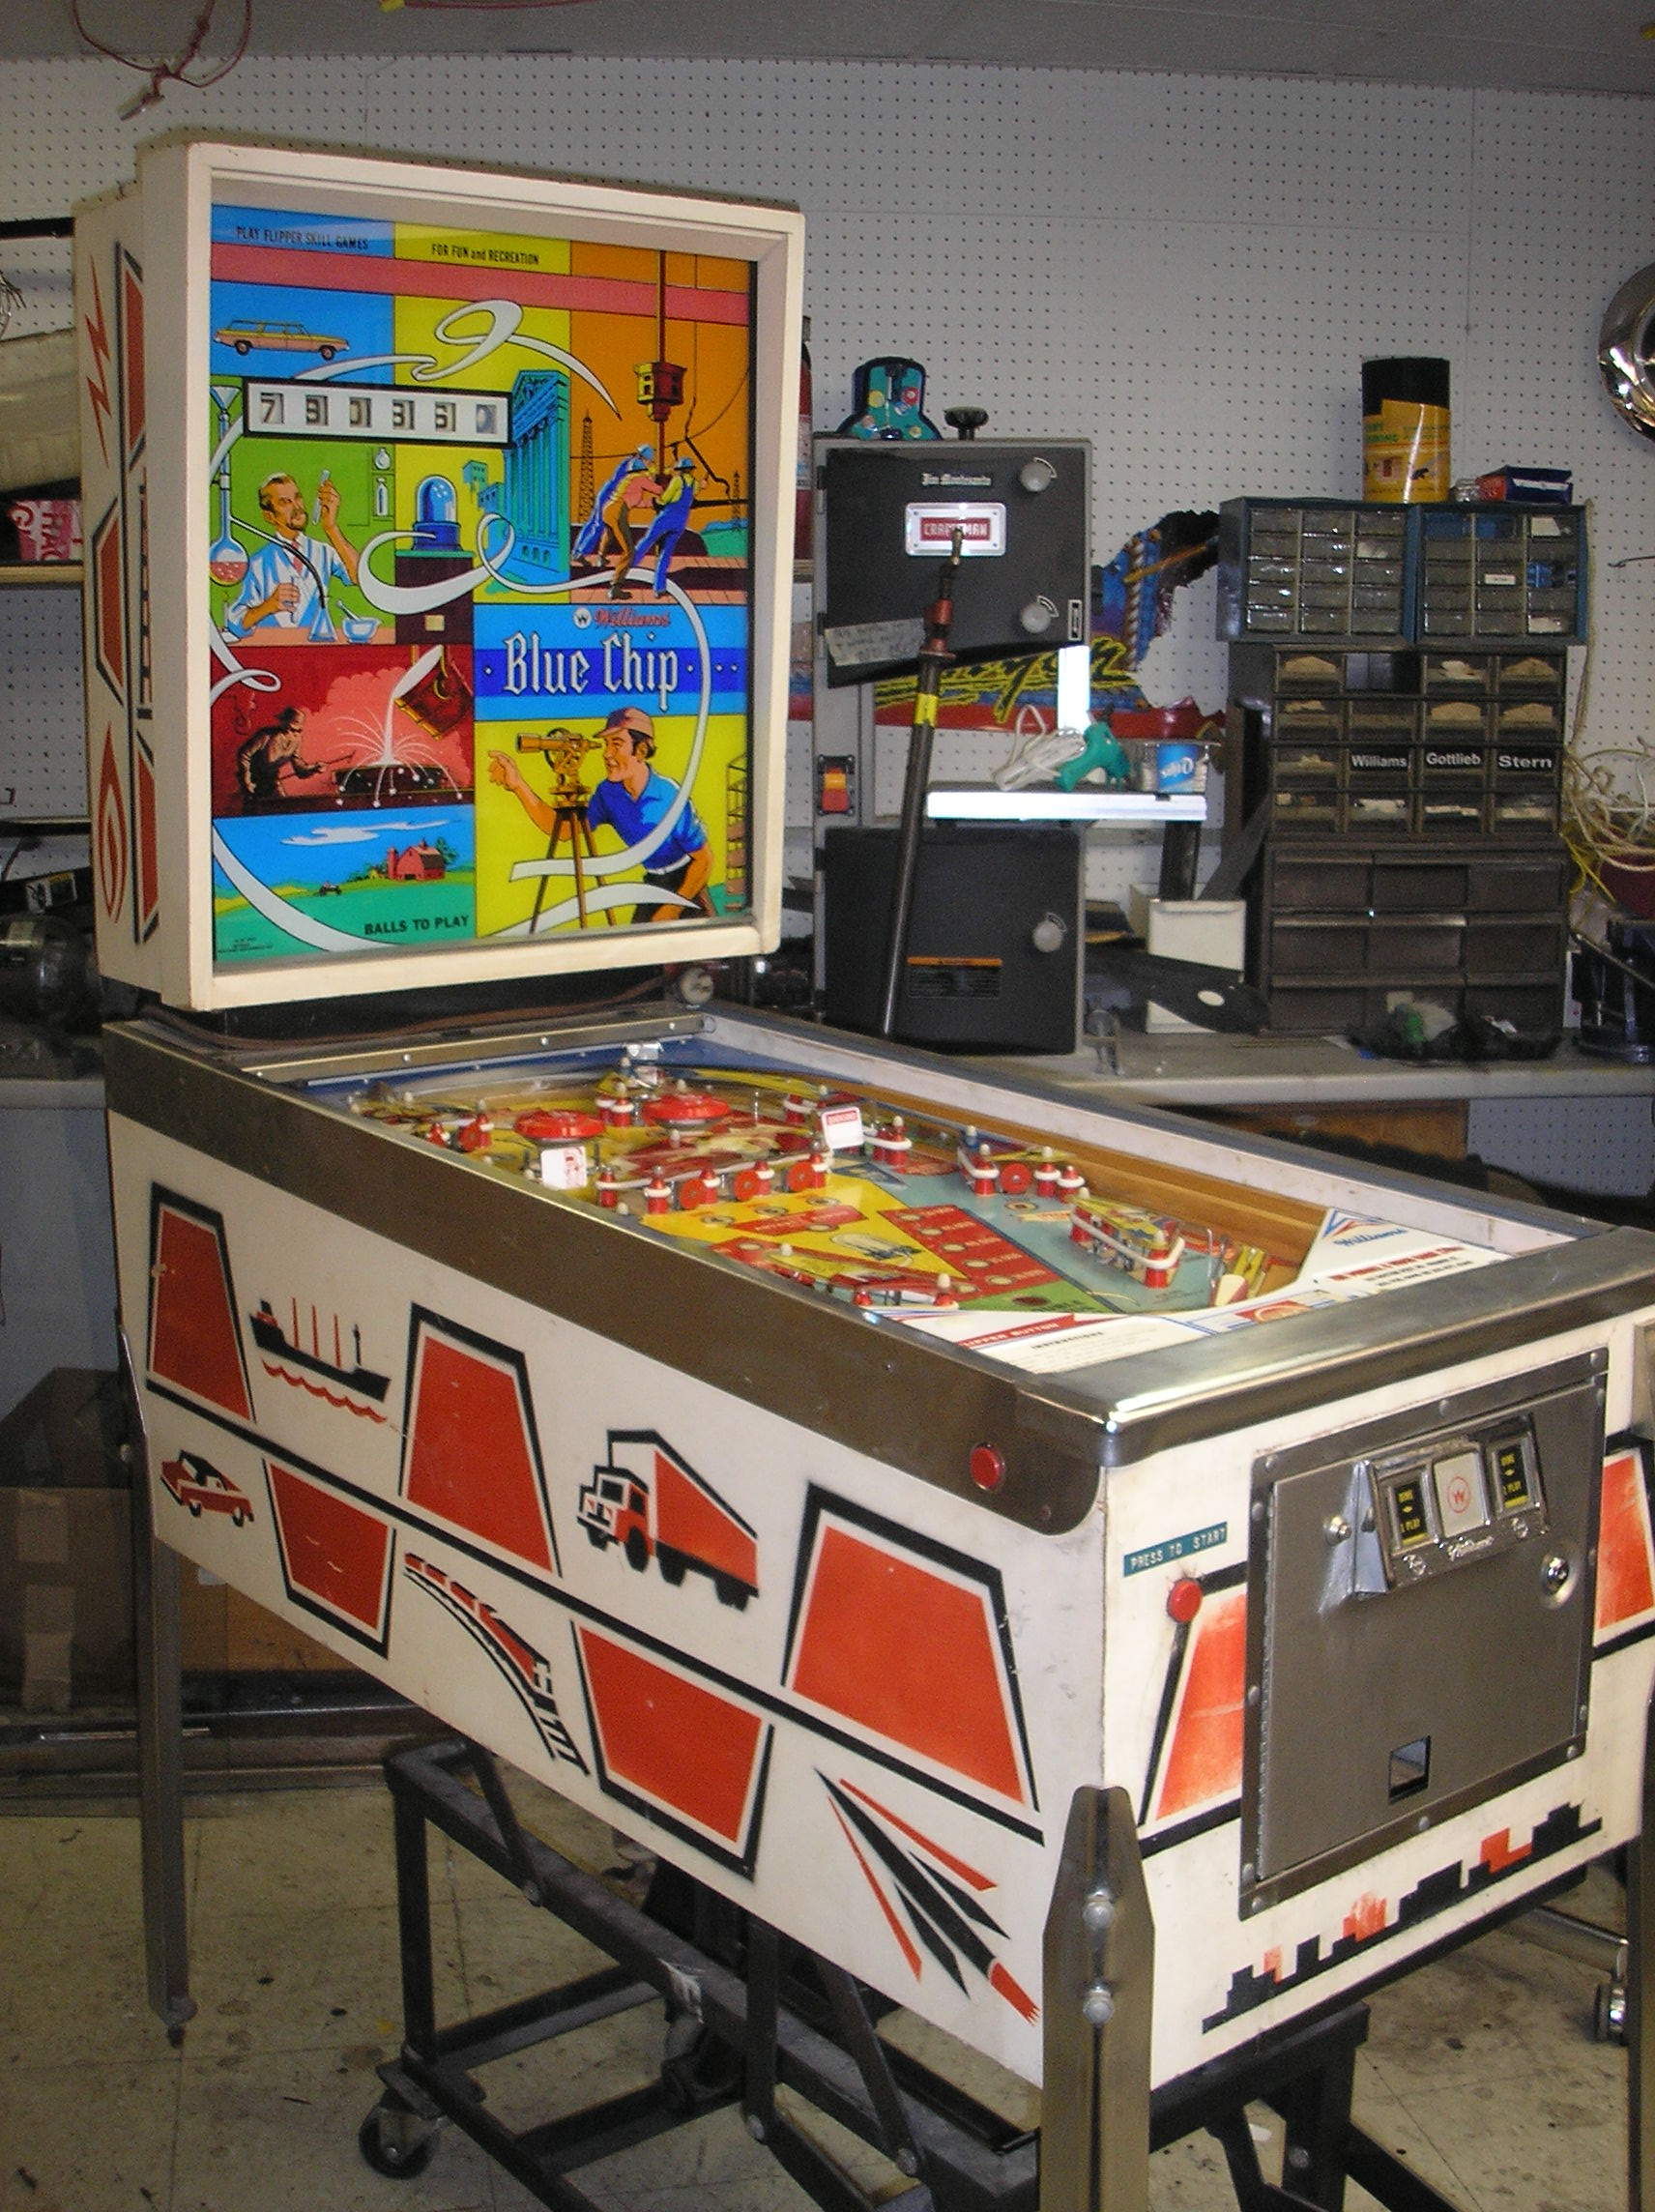 williams gaming machines for sale